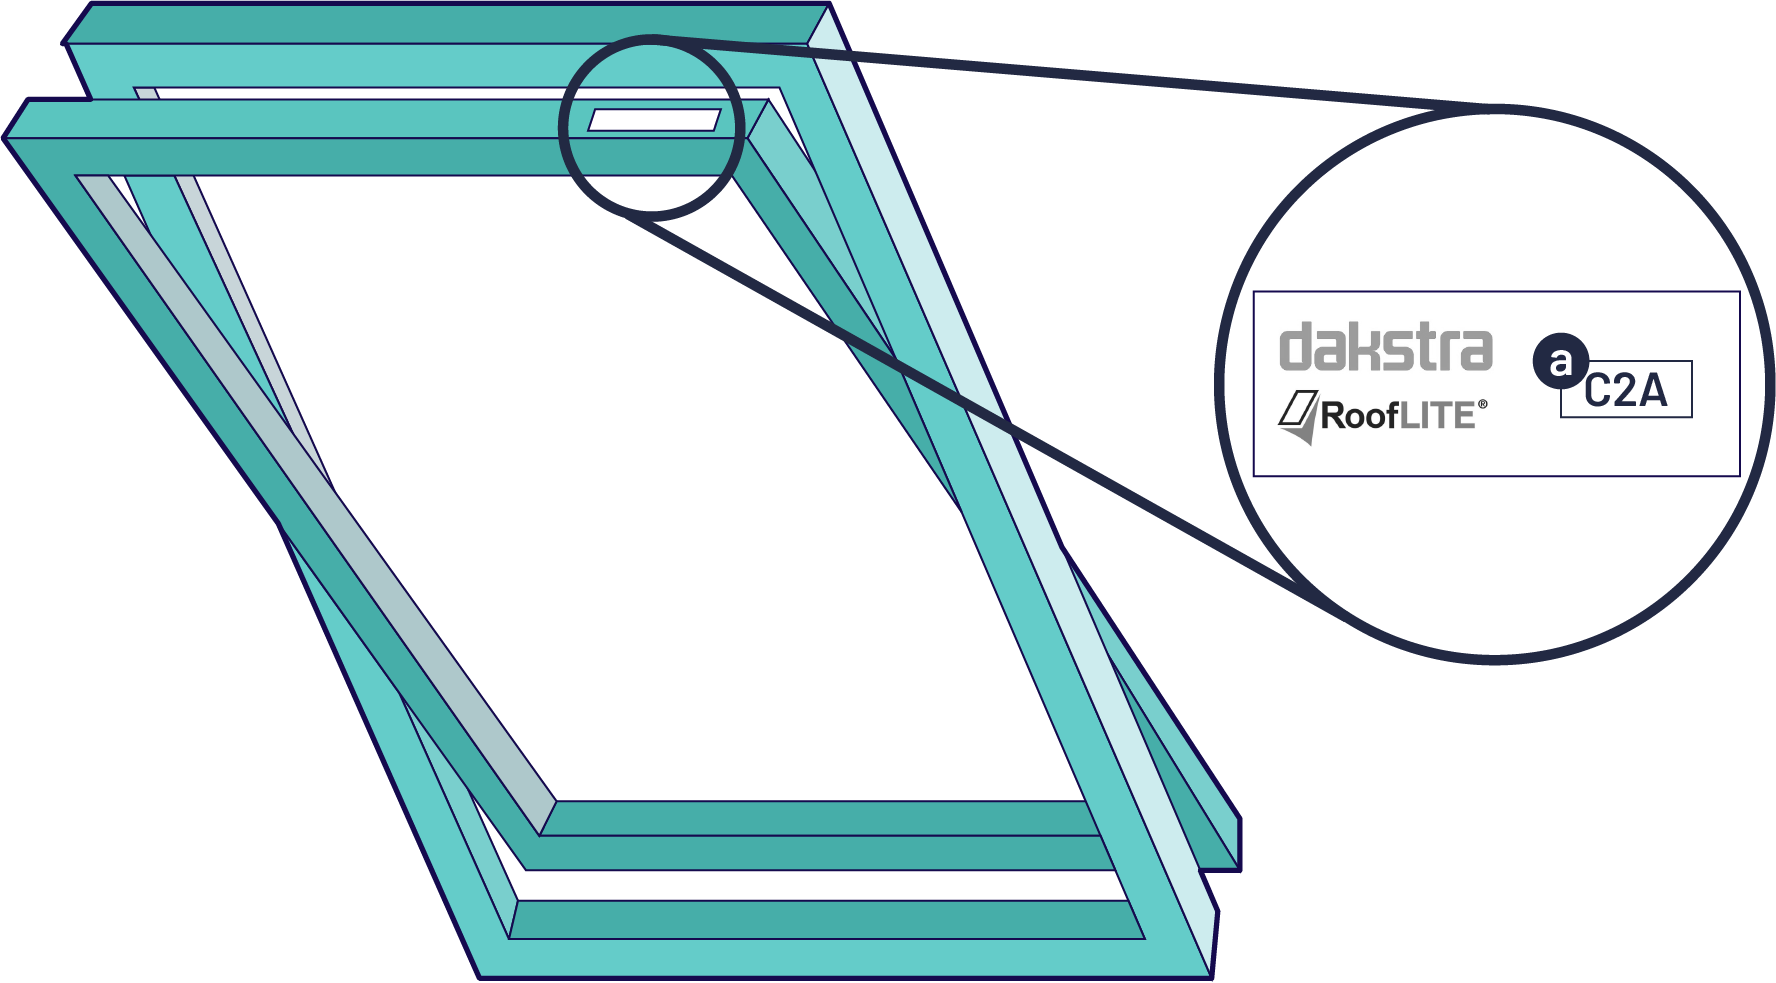 A skylight window showing where to find your Dakstra code